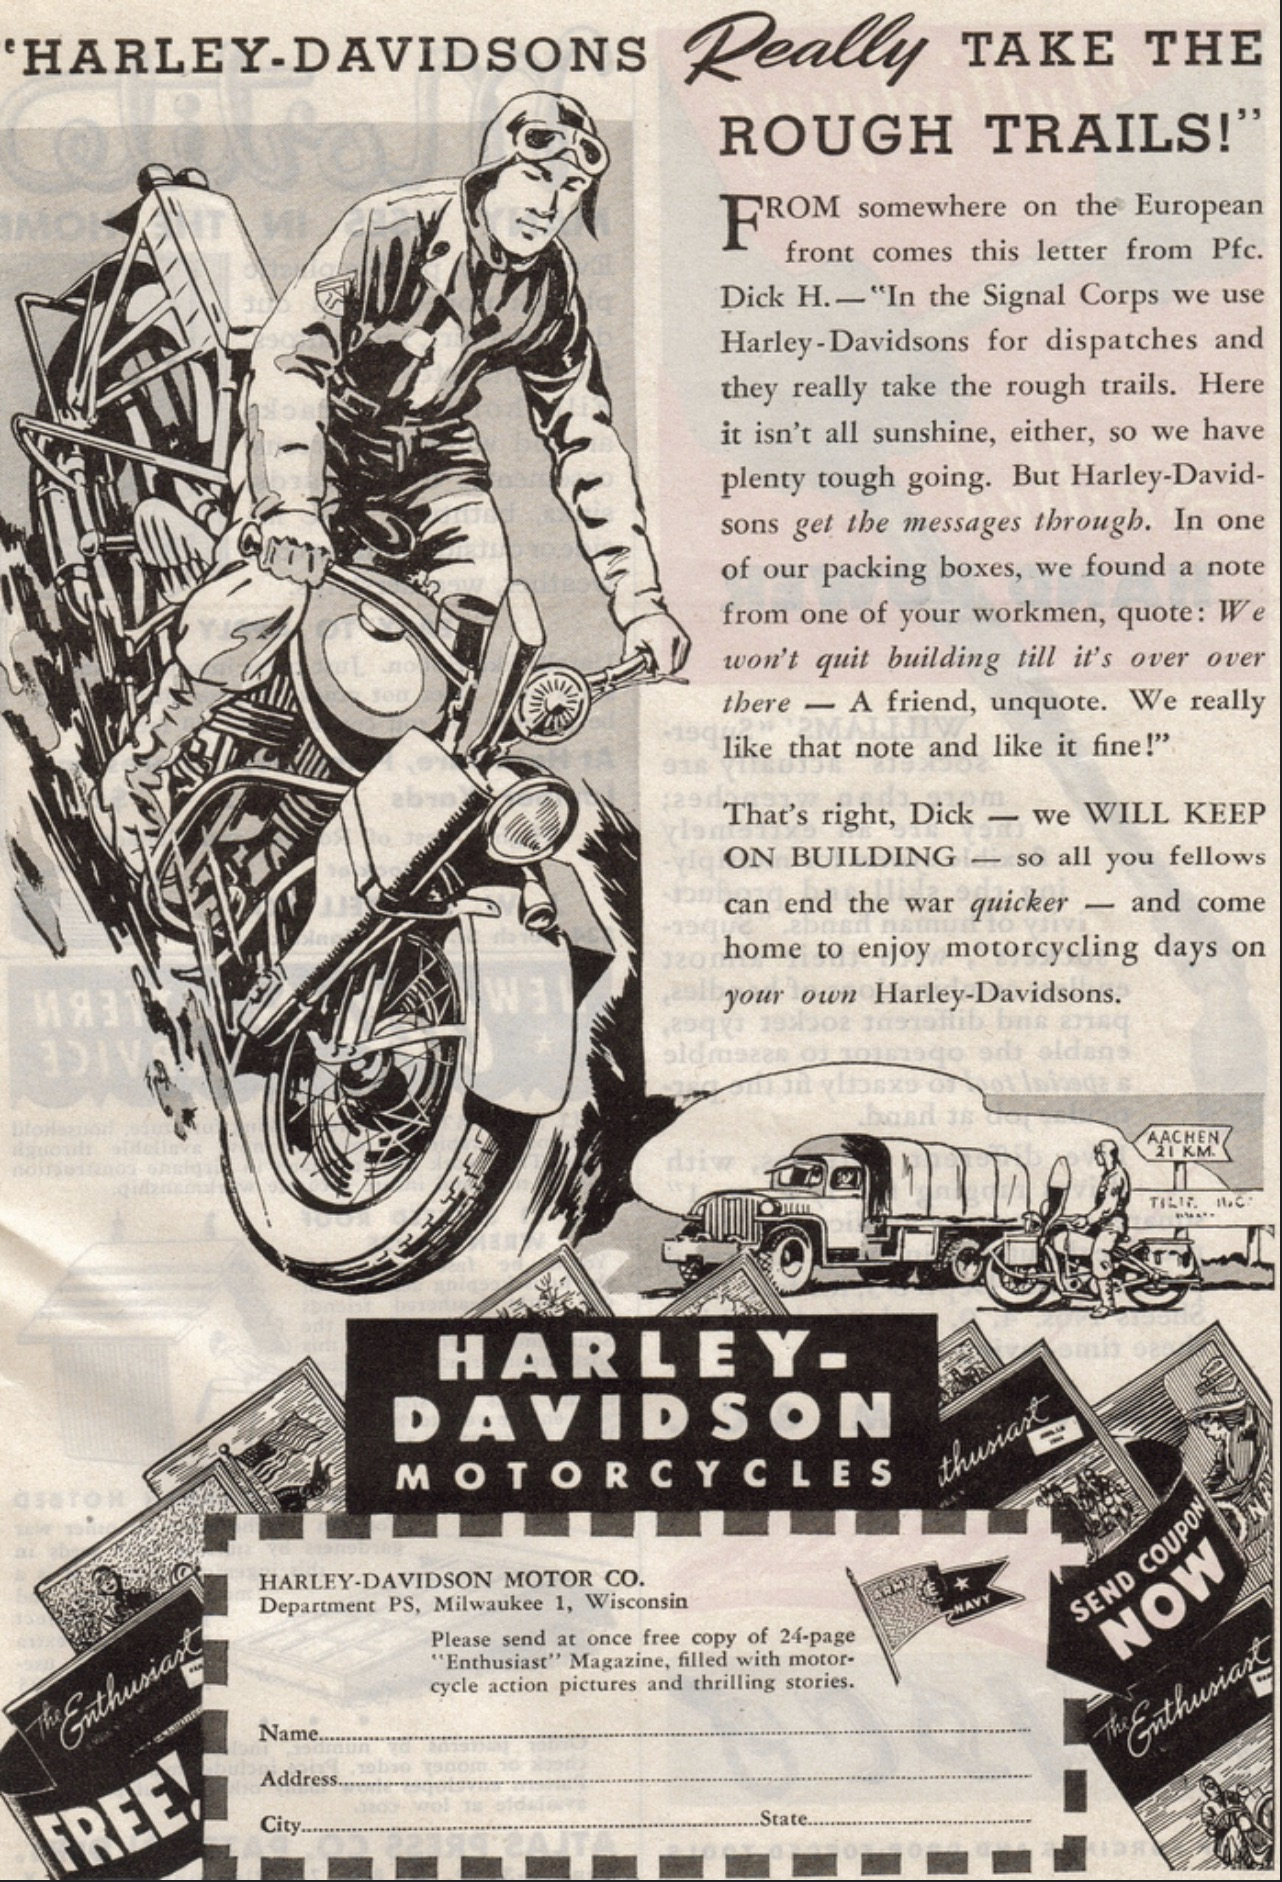 Harley-Davidson really take the rough trails